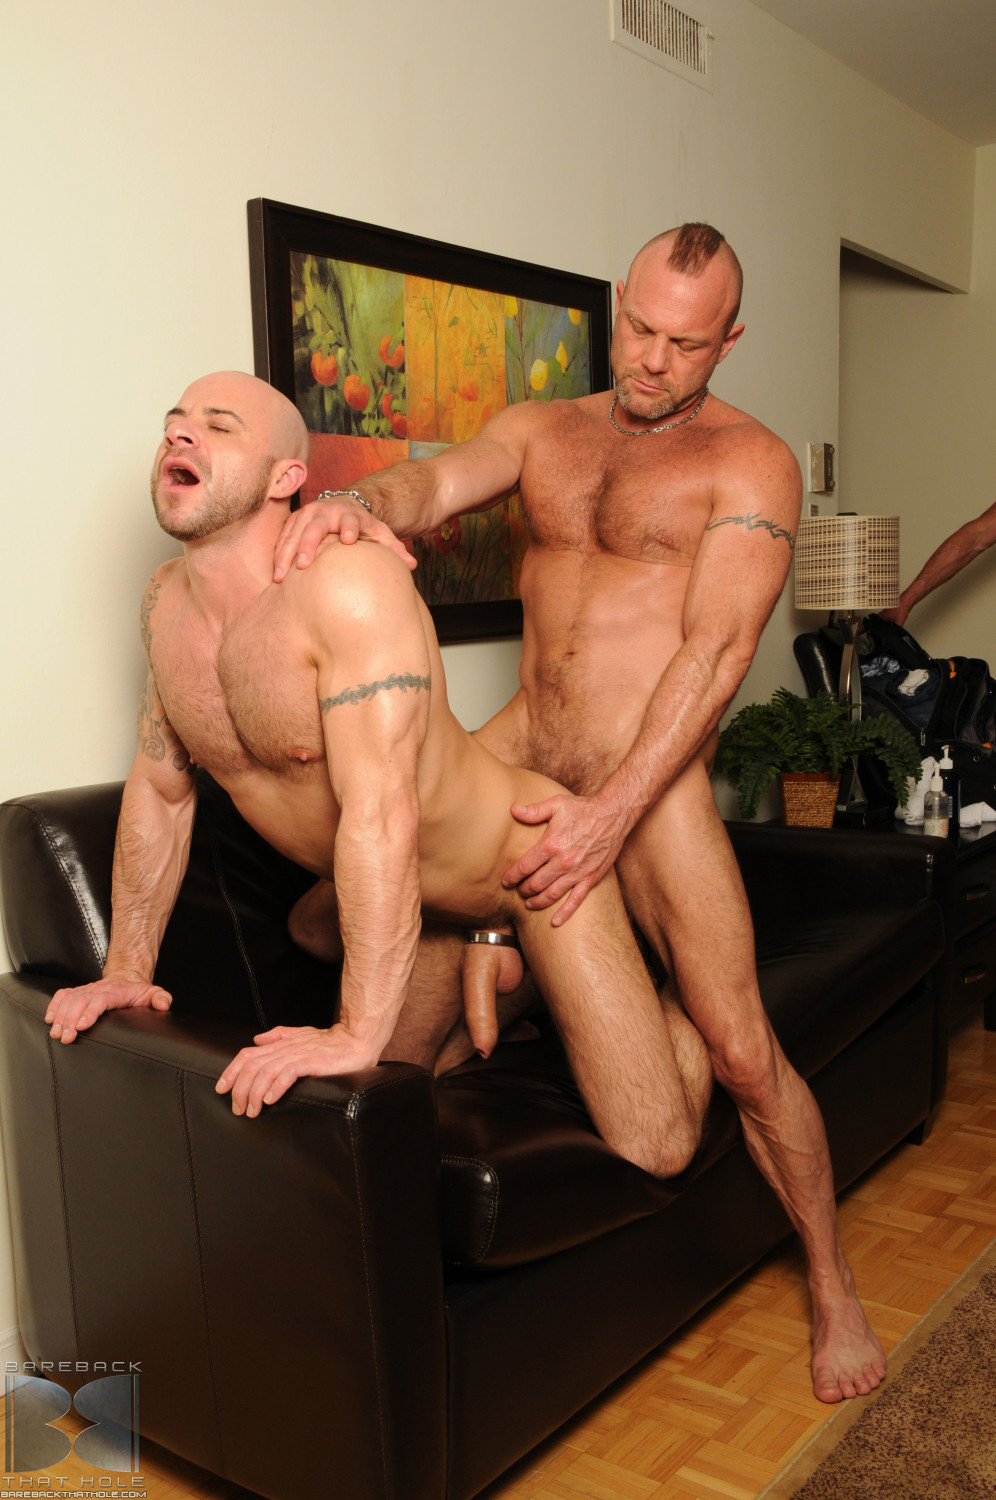 Bareback That Hole Chad Brock and Ben Statham big uncut cock 12 Bareback That Hole: Chad Brock and Ben Statham